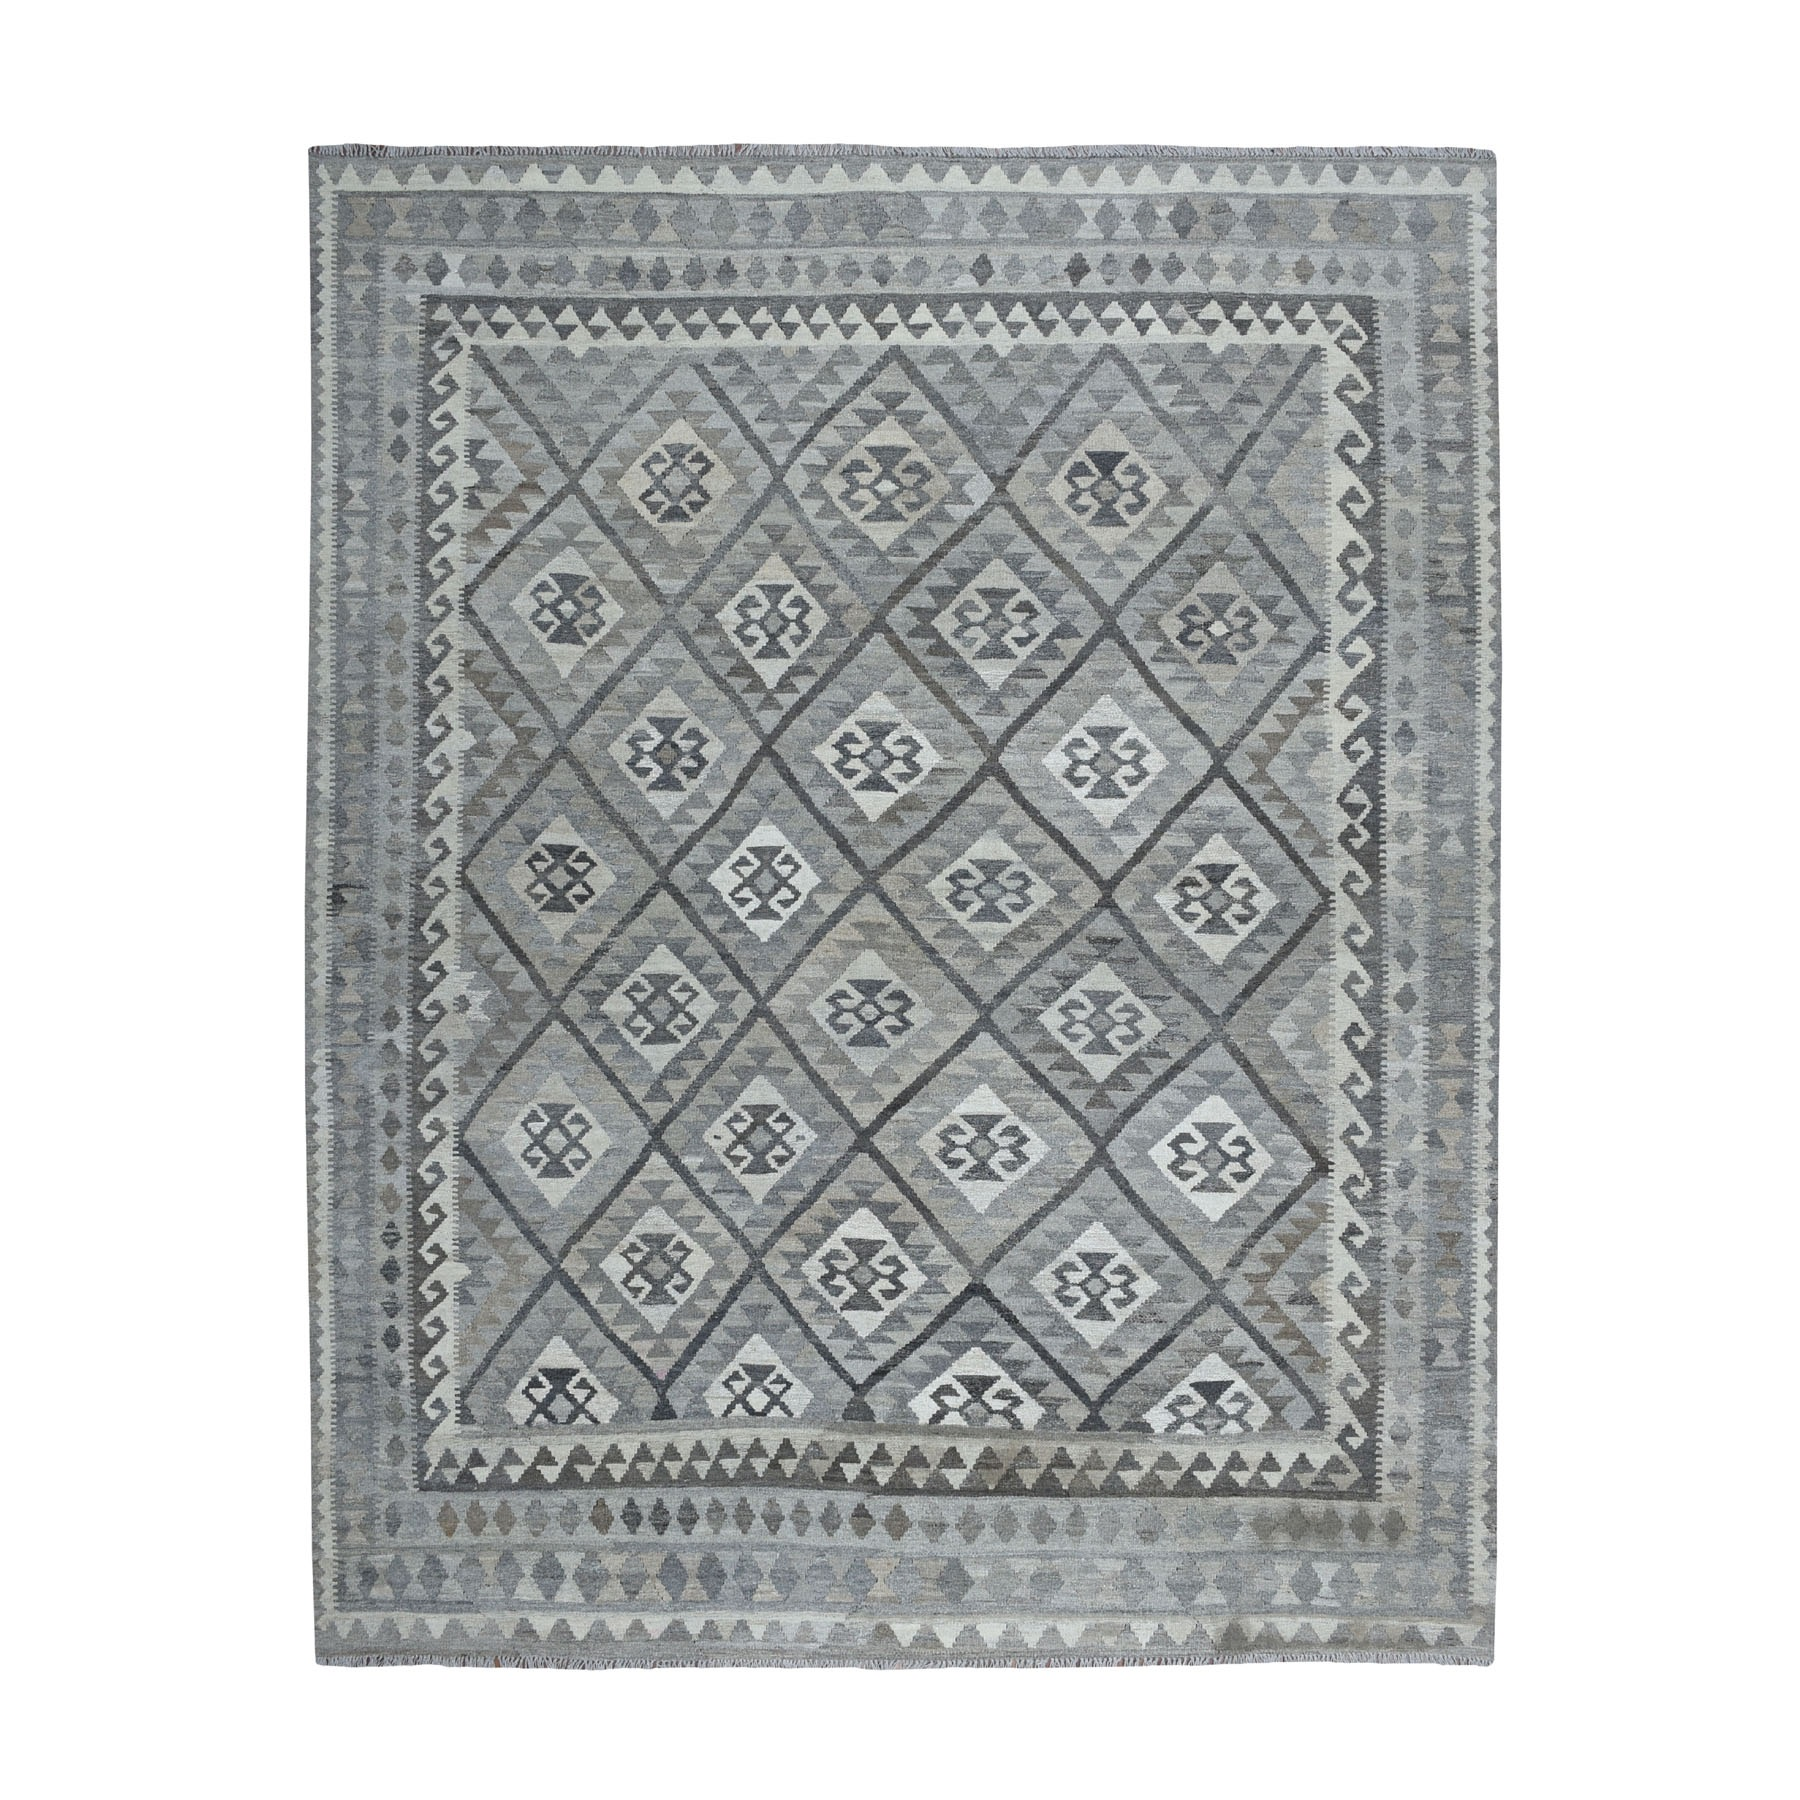 """8'4""""X9'5"""" Undyed Natural Wool Afghan Kilim Reversible Hand Woven Oriental Rug moaeb967"""